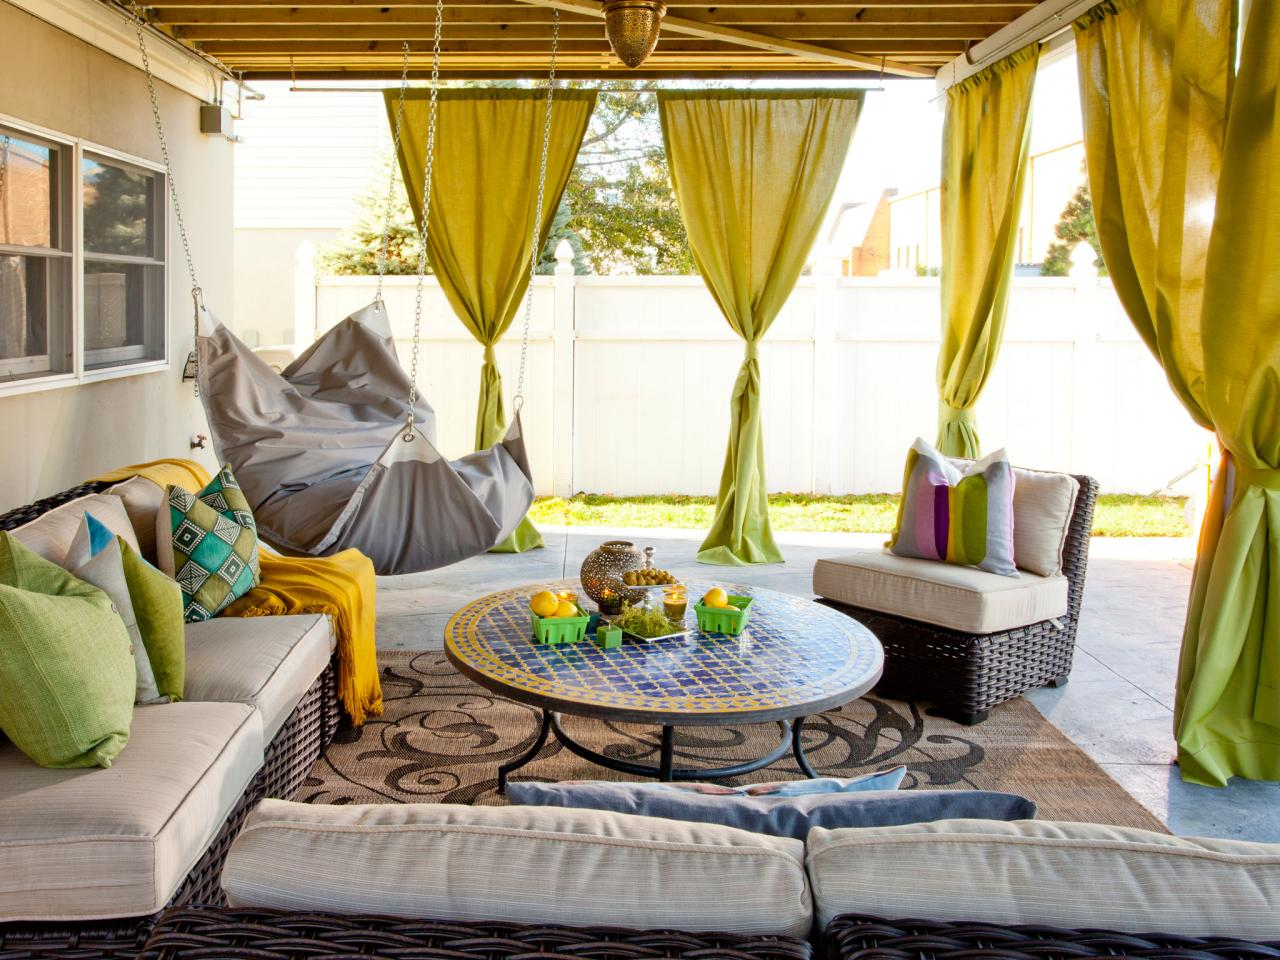 bp_hcocl101h_outdoor-room-with-curtains-72257_50613_h-jpg-rend-hgtvcom-1280-960